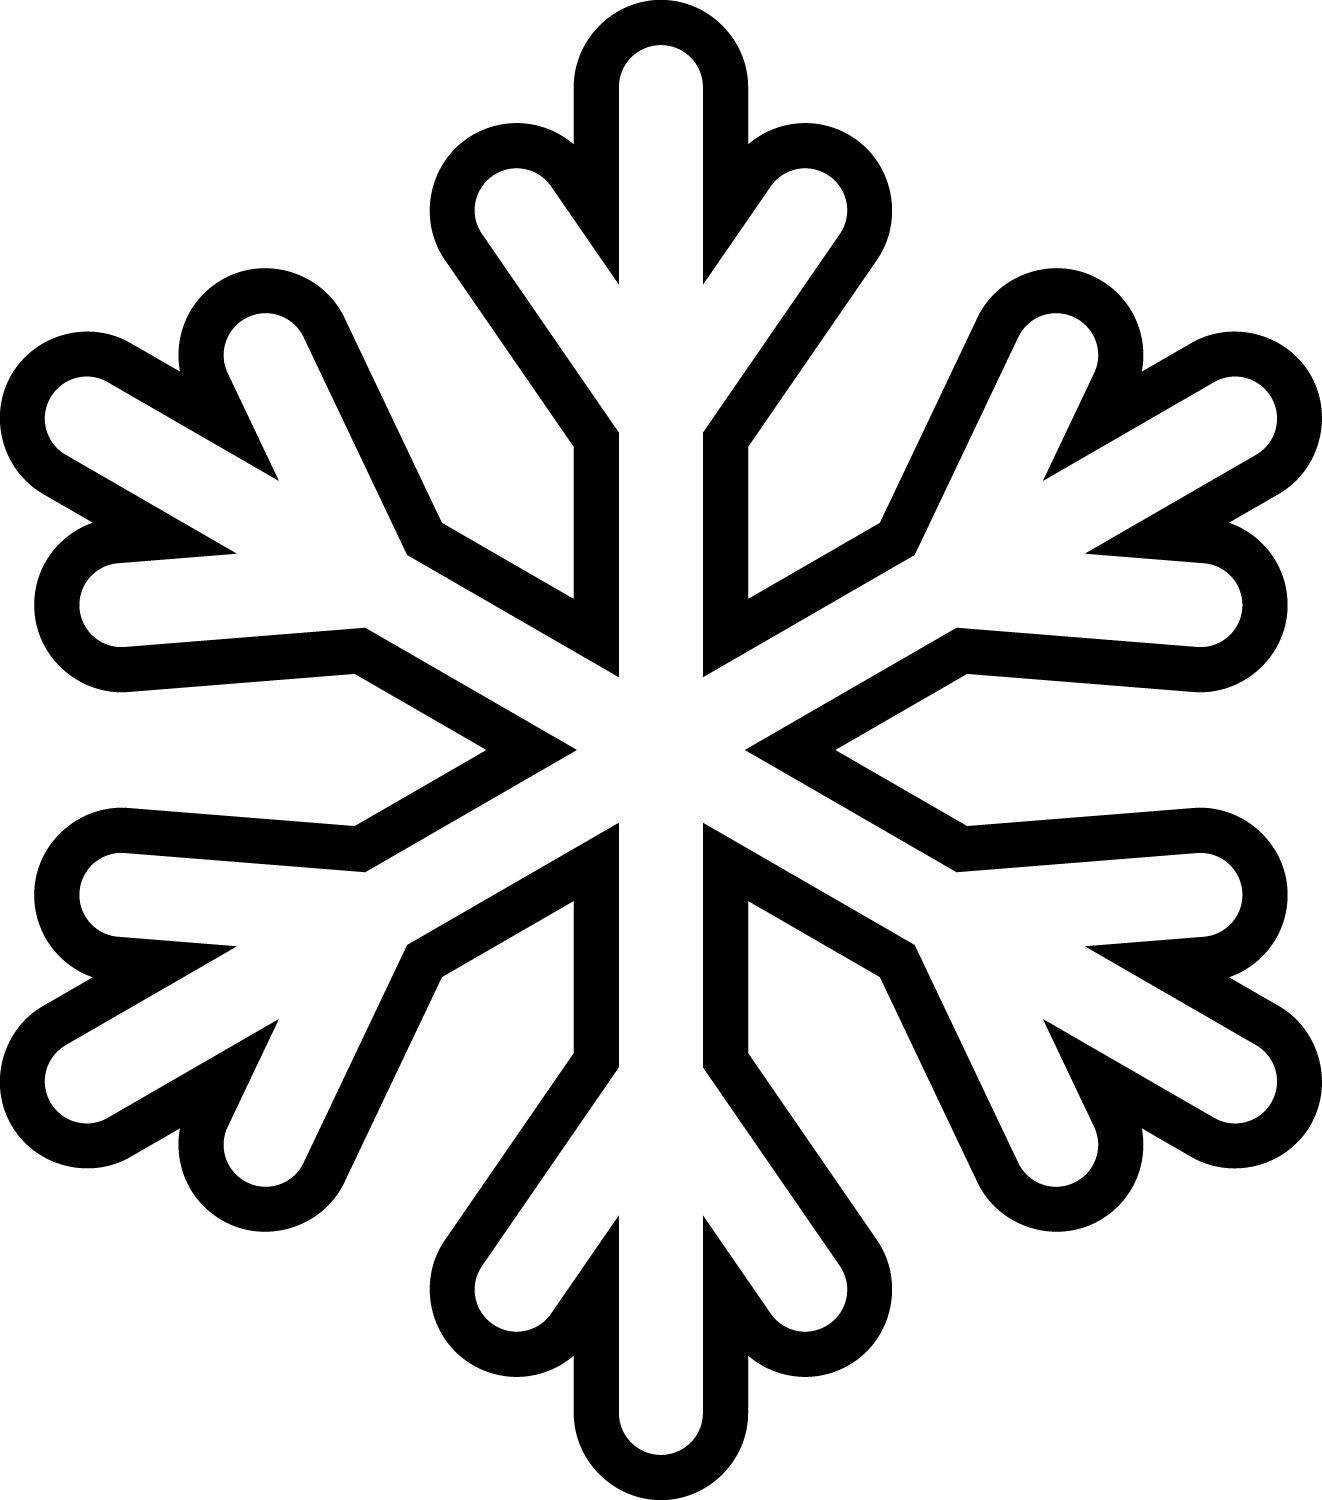 snowflake outline png